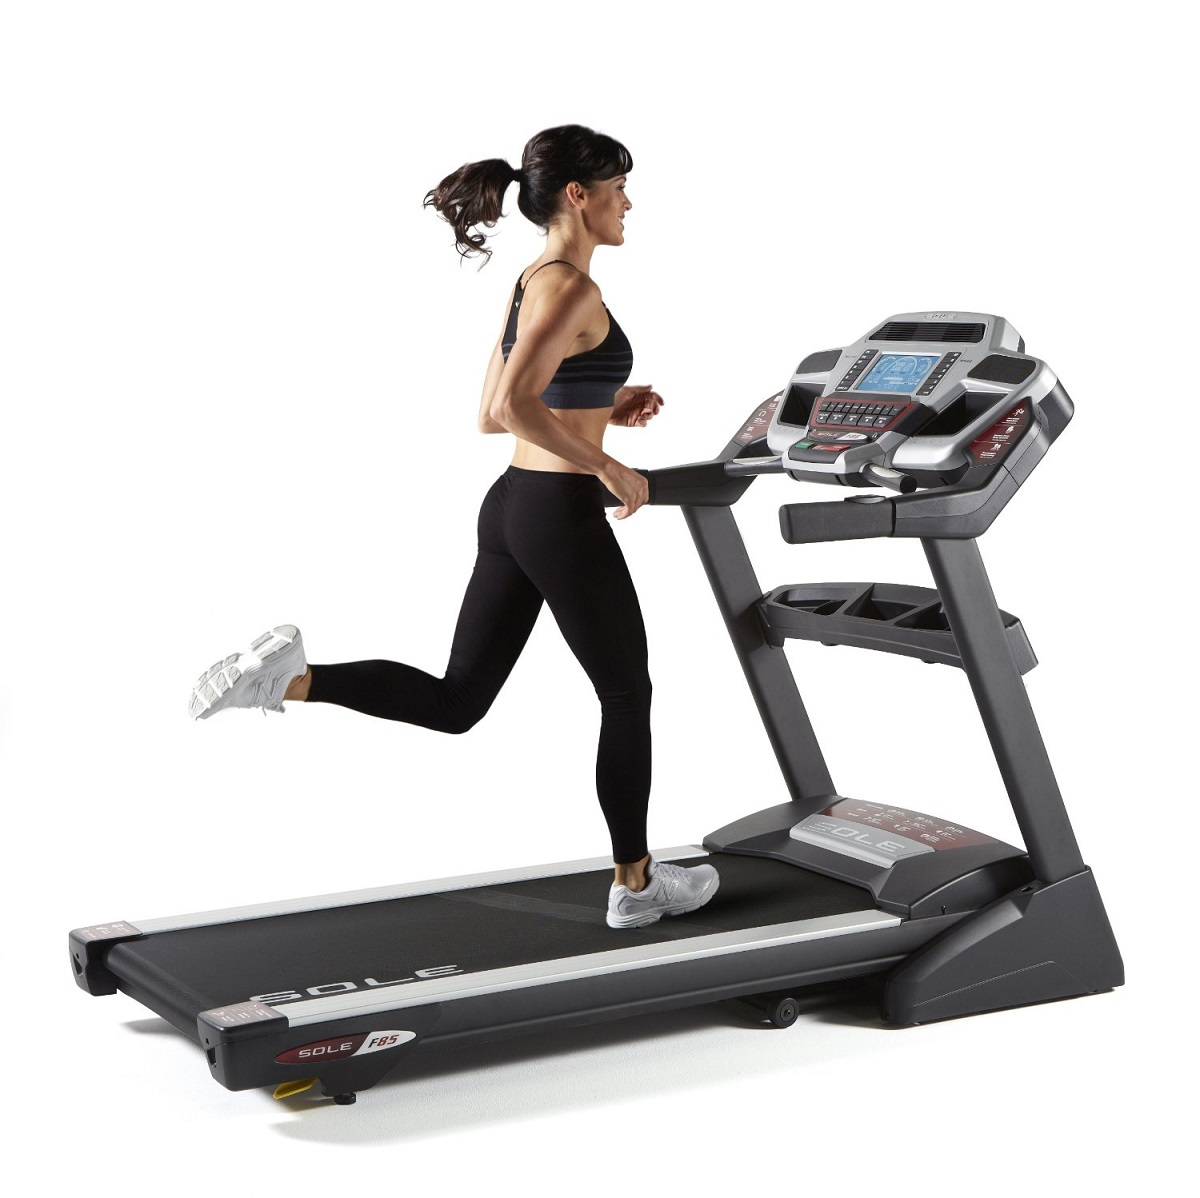 image treadmills for sale  ⭐ 10 Best Treadmills for Sale in 2017 ⋆ ✅ Anytime Magaine